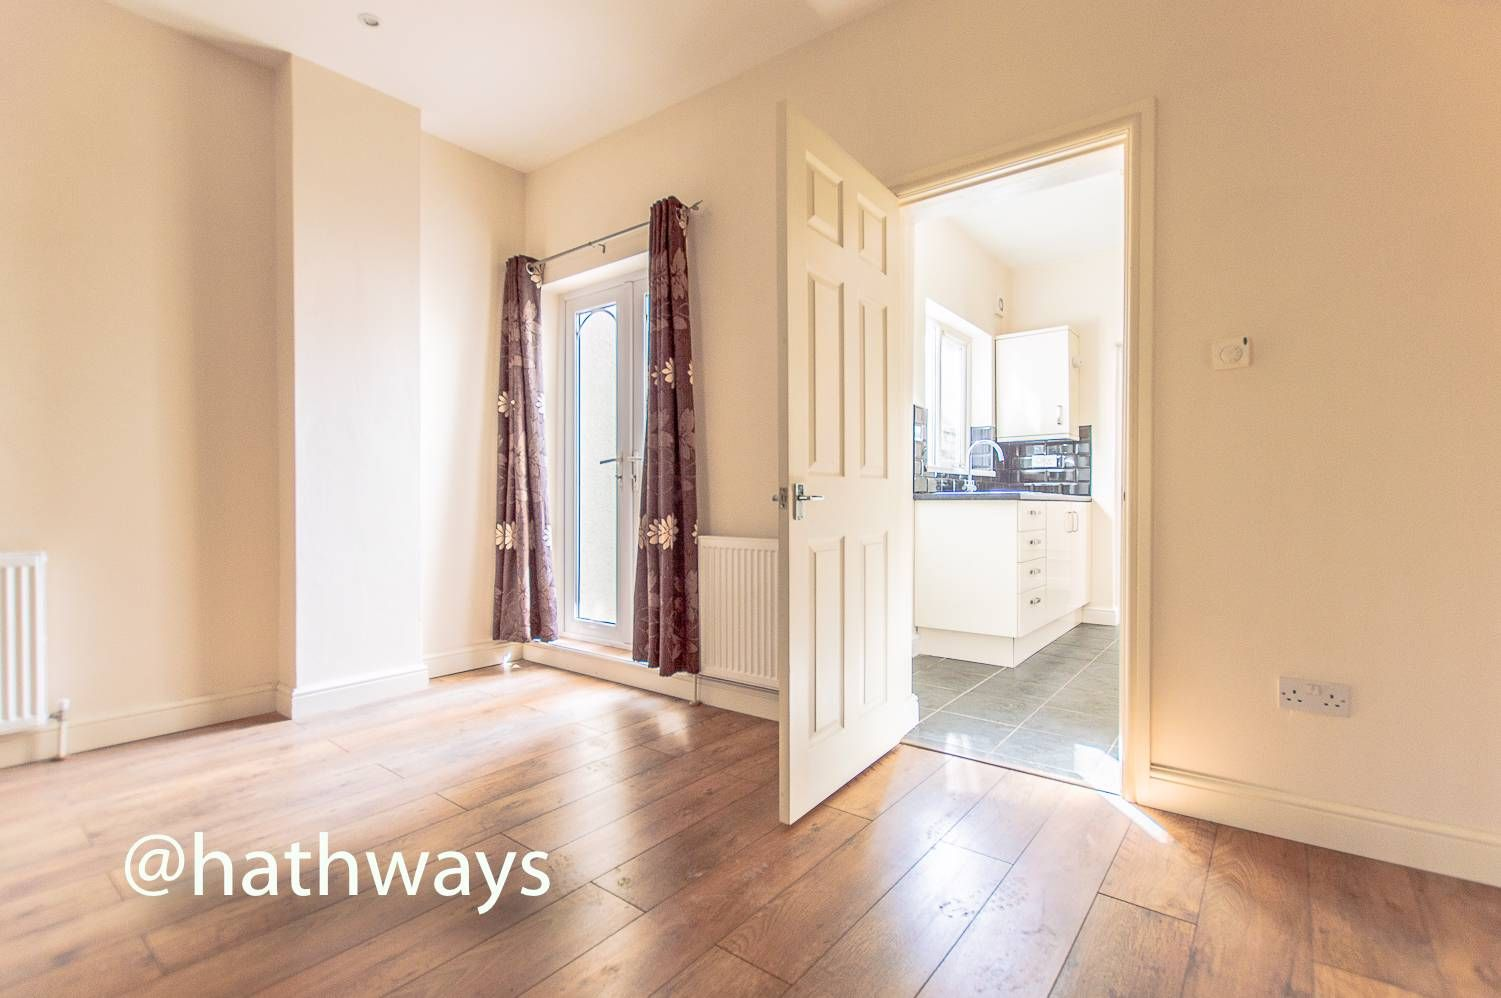 3 bed house for sale in Glenview 8